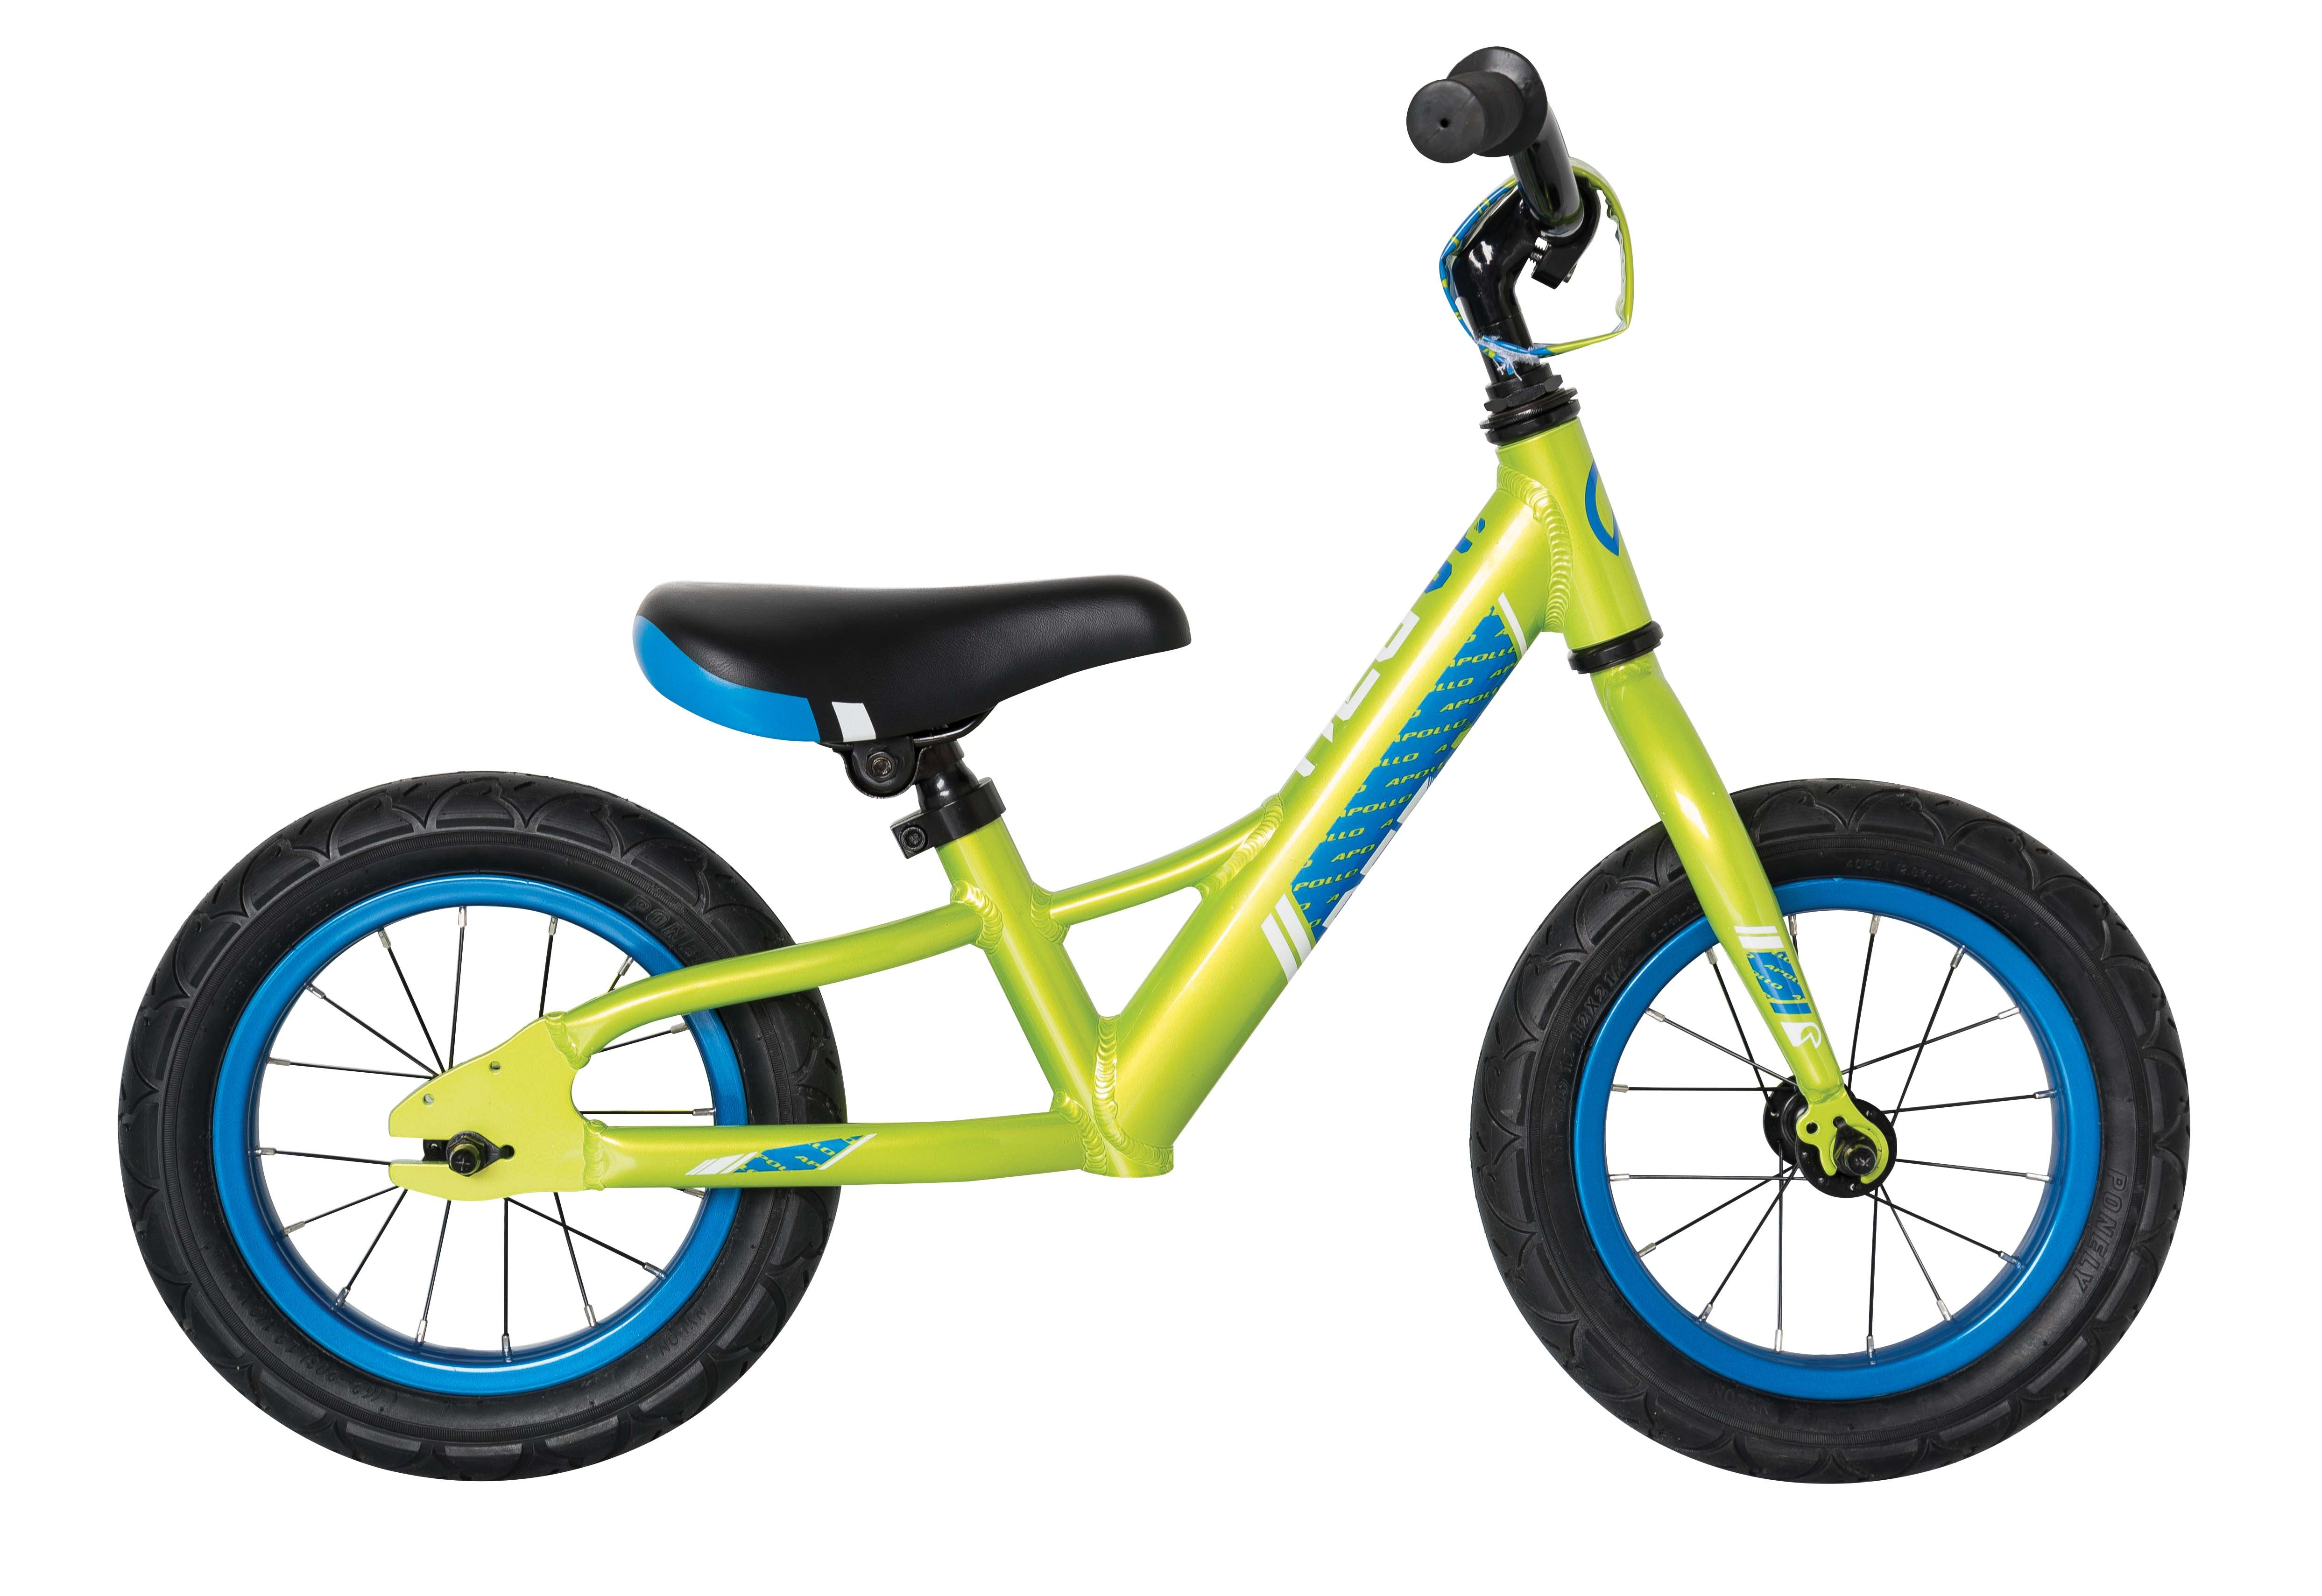 Kids bike clipart vector black and white Free Pictures Of Kids Bikes, Download Free Clip Art, Free ... vector black and white